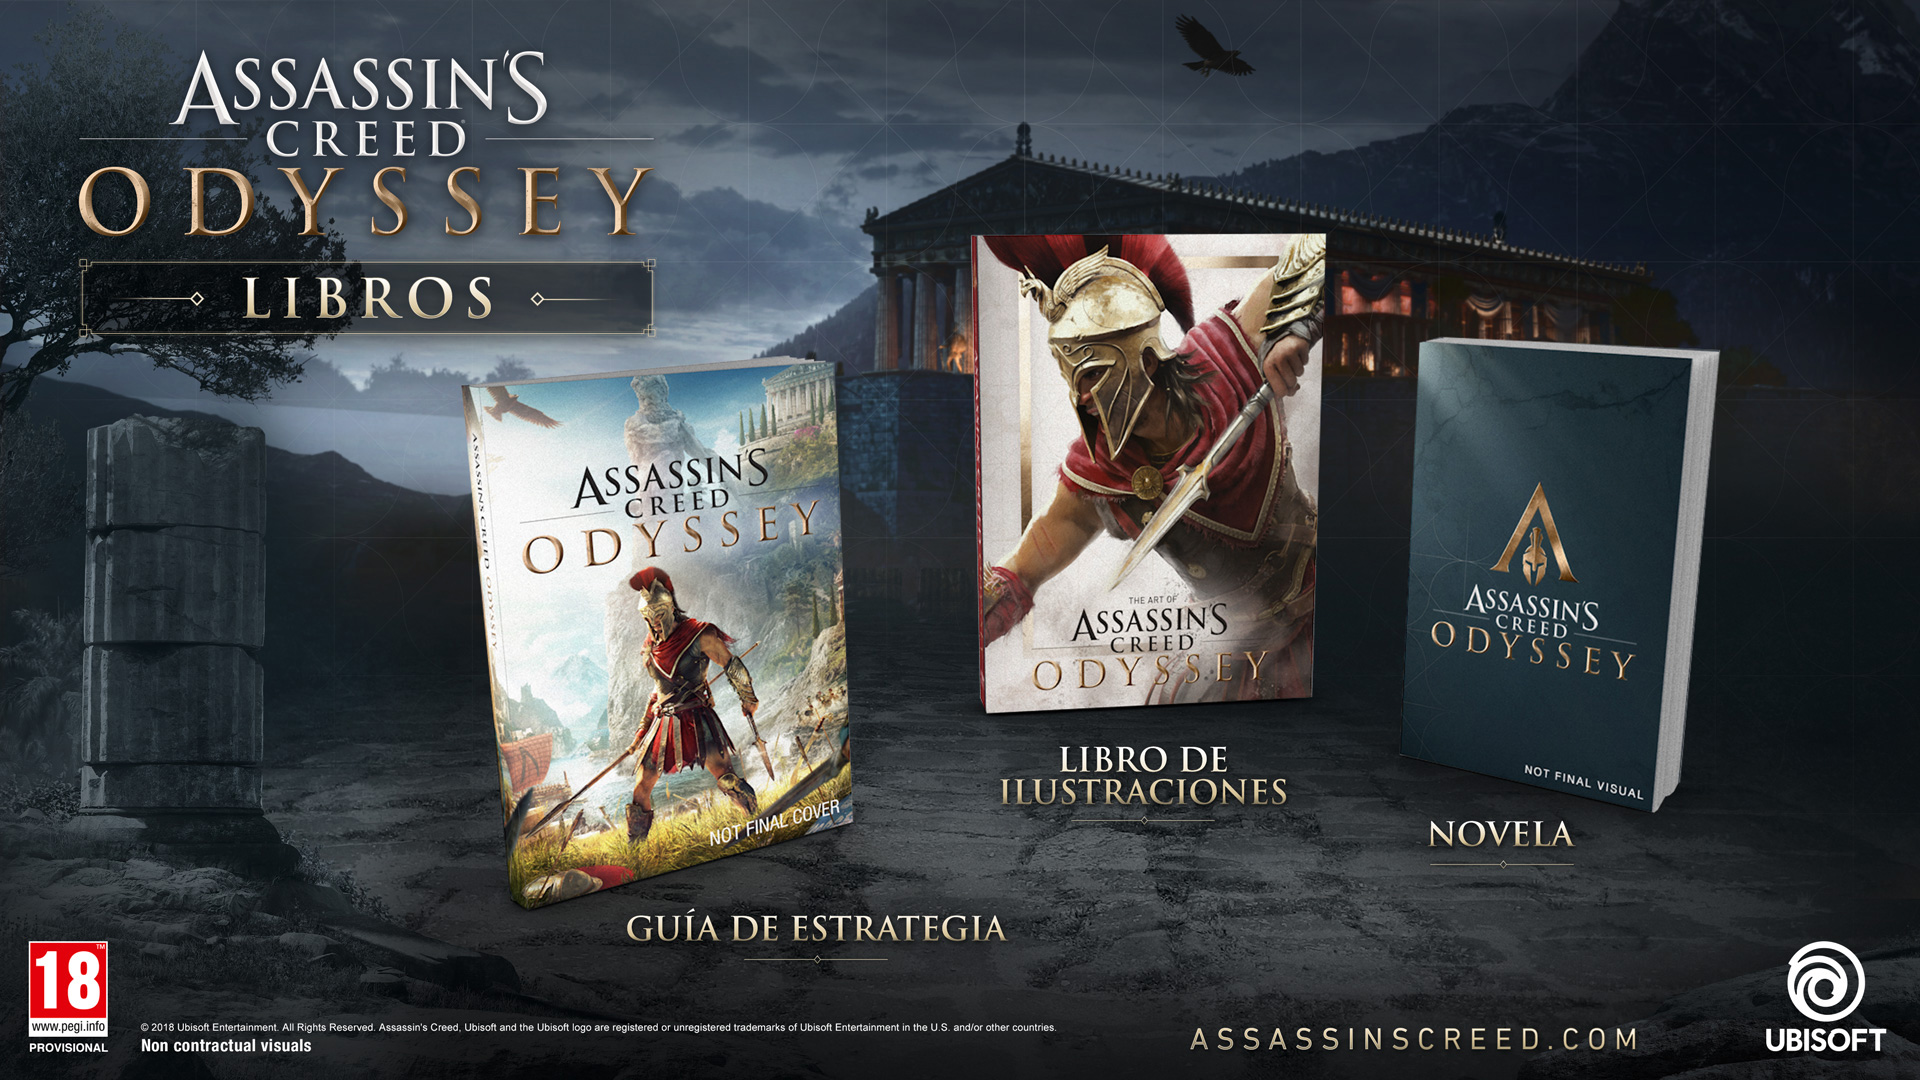 http://www.idgtv.es/archivos/201806/assassins-creed-odyssey.jpg